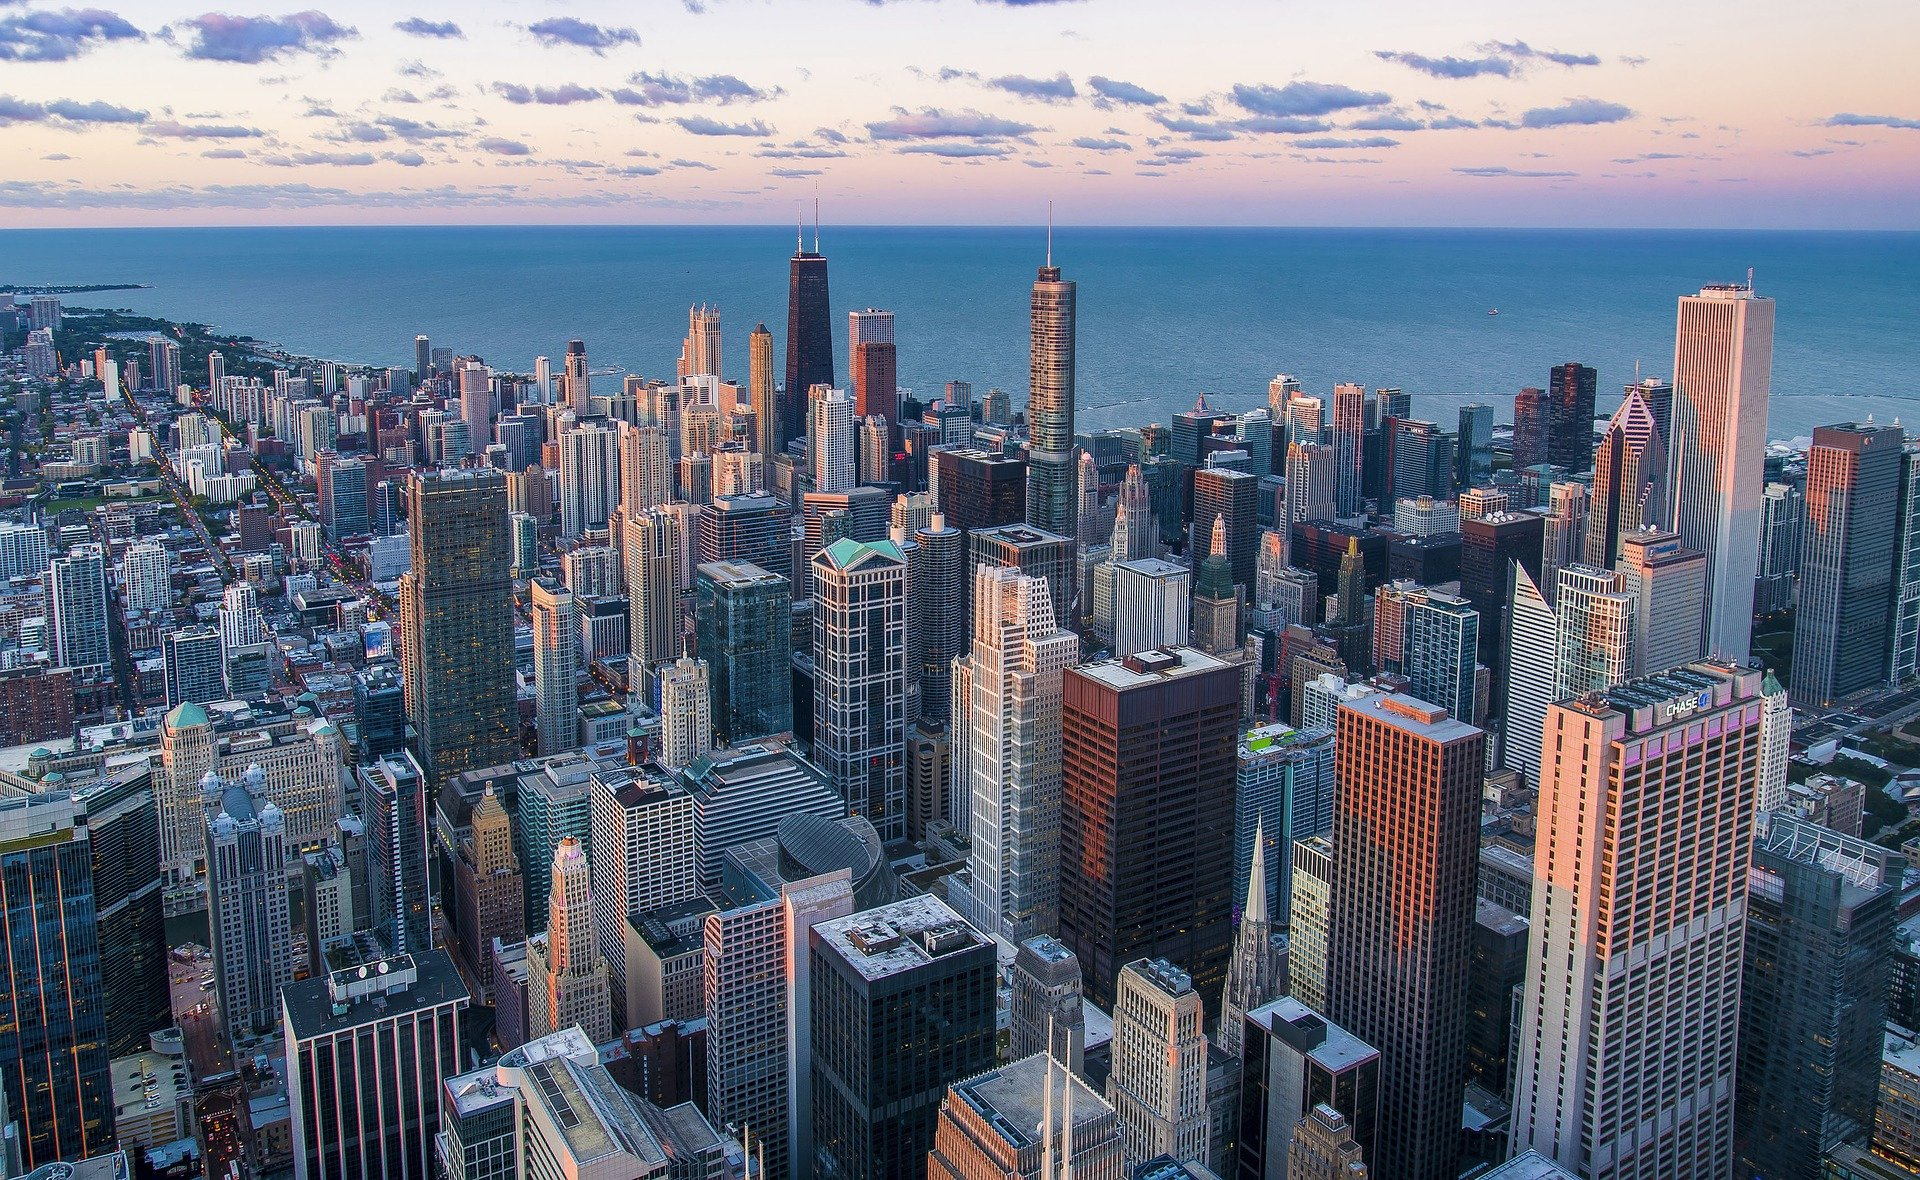 Vice President Operations Job in Chicago IL